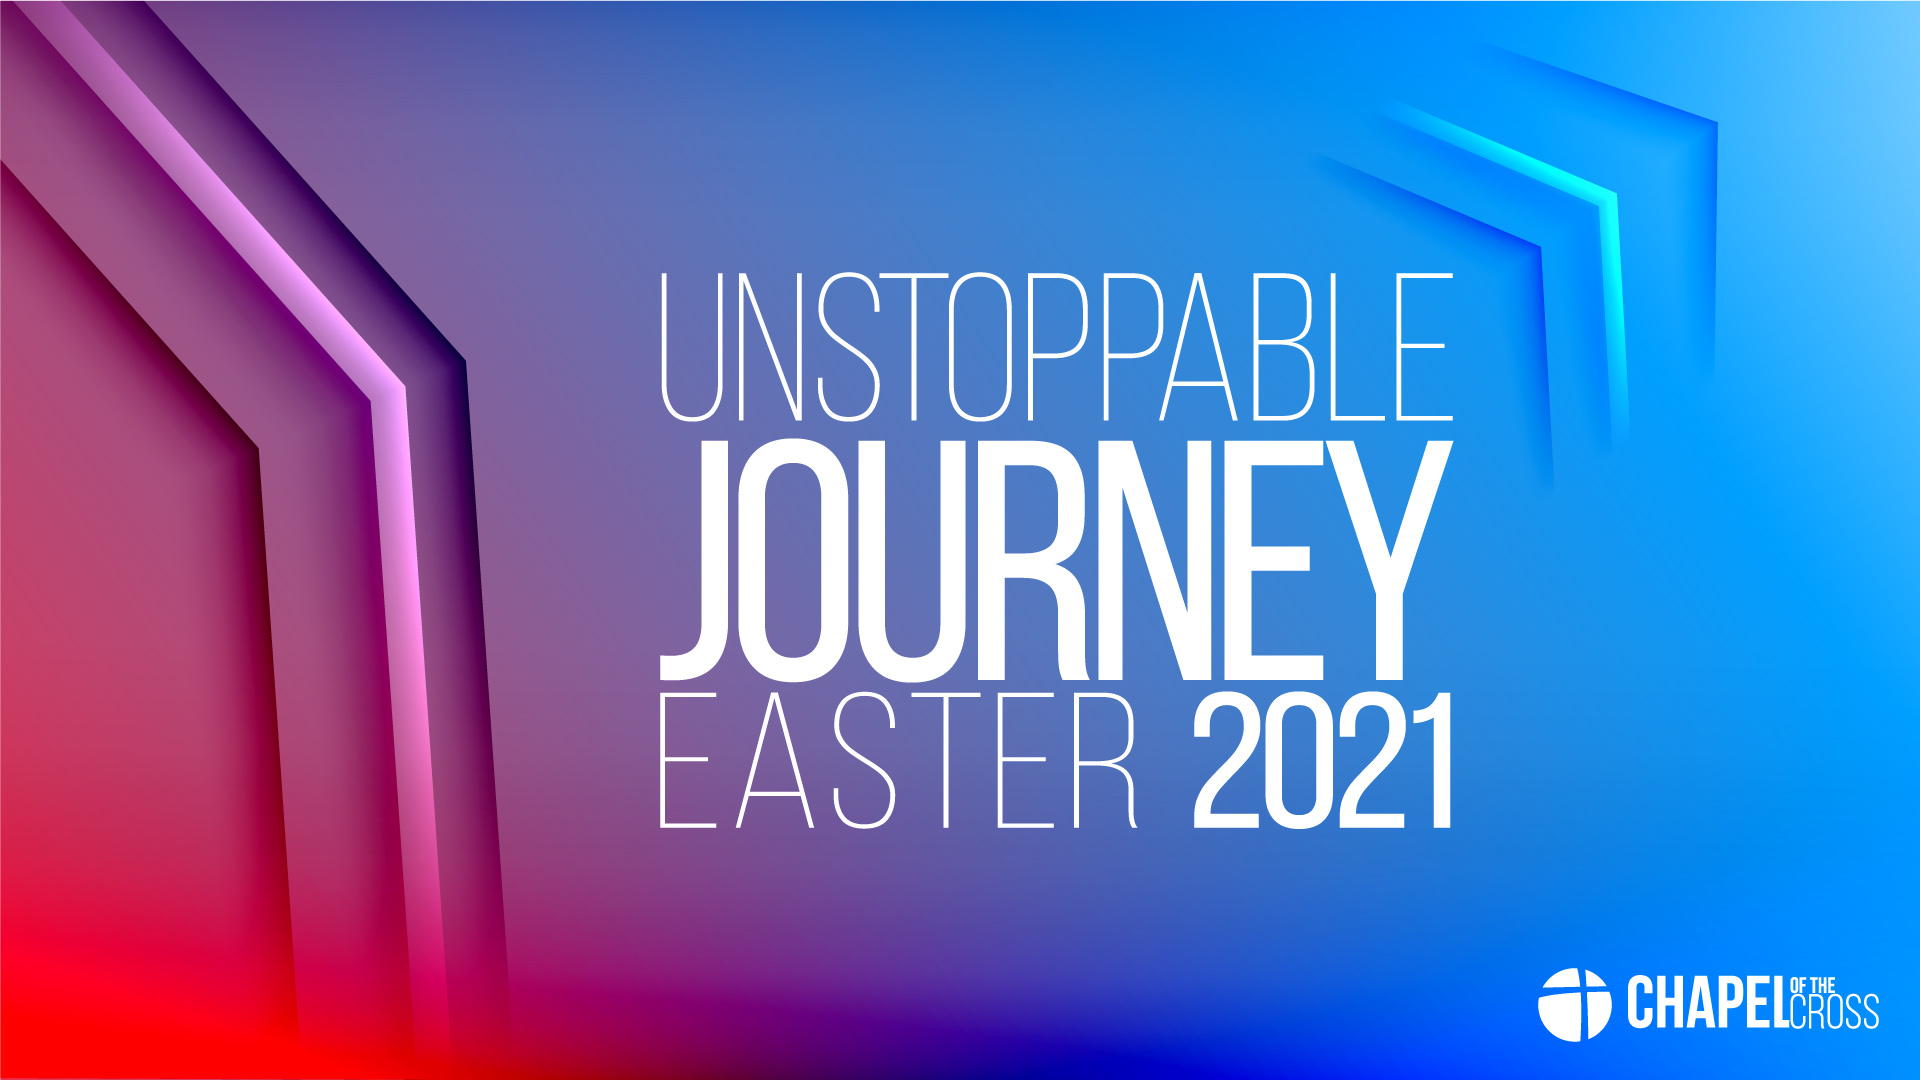 2021-03-11-unstoppable-jouney_title image